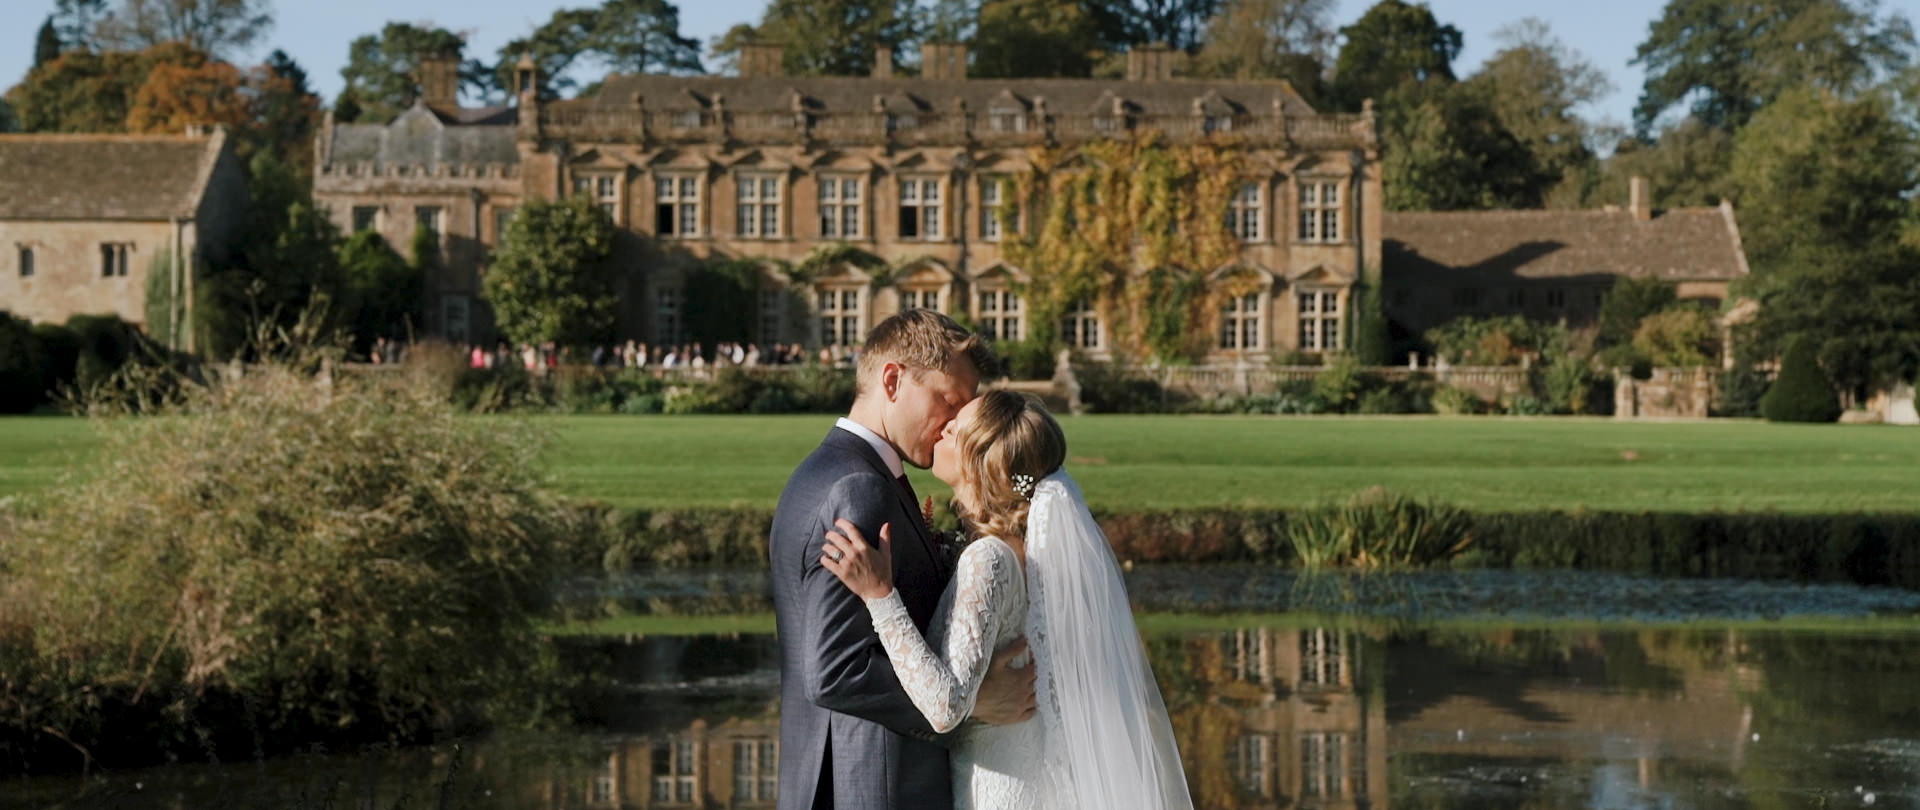 Chris + Carson | Bristol, Great Britain (UK) | Brympton House